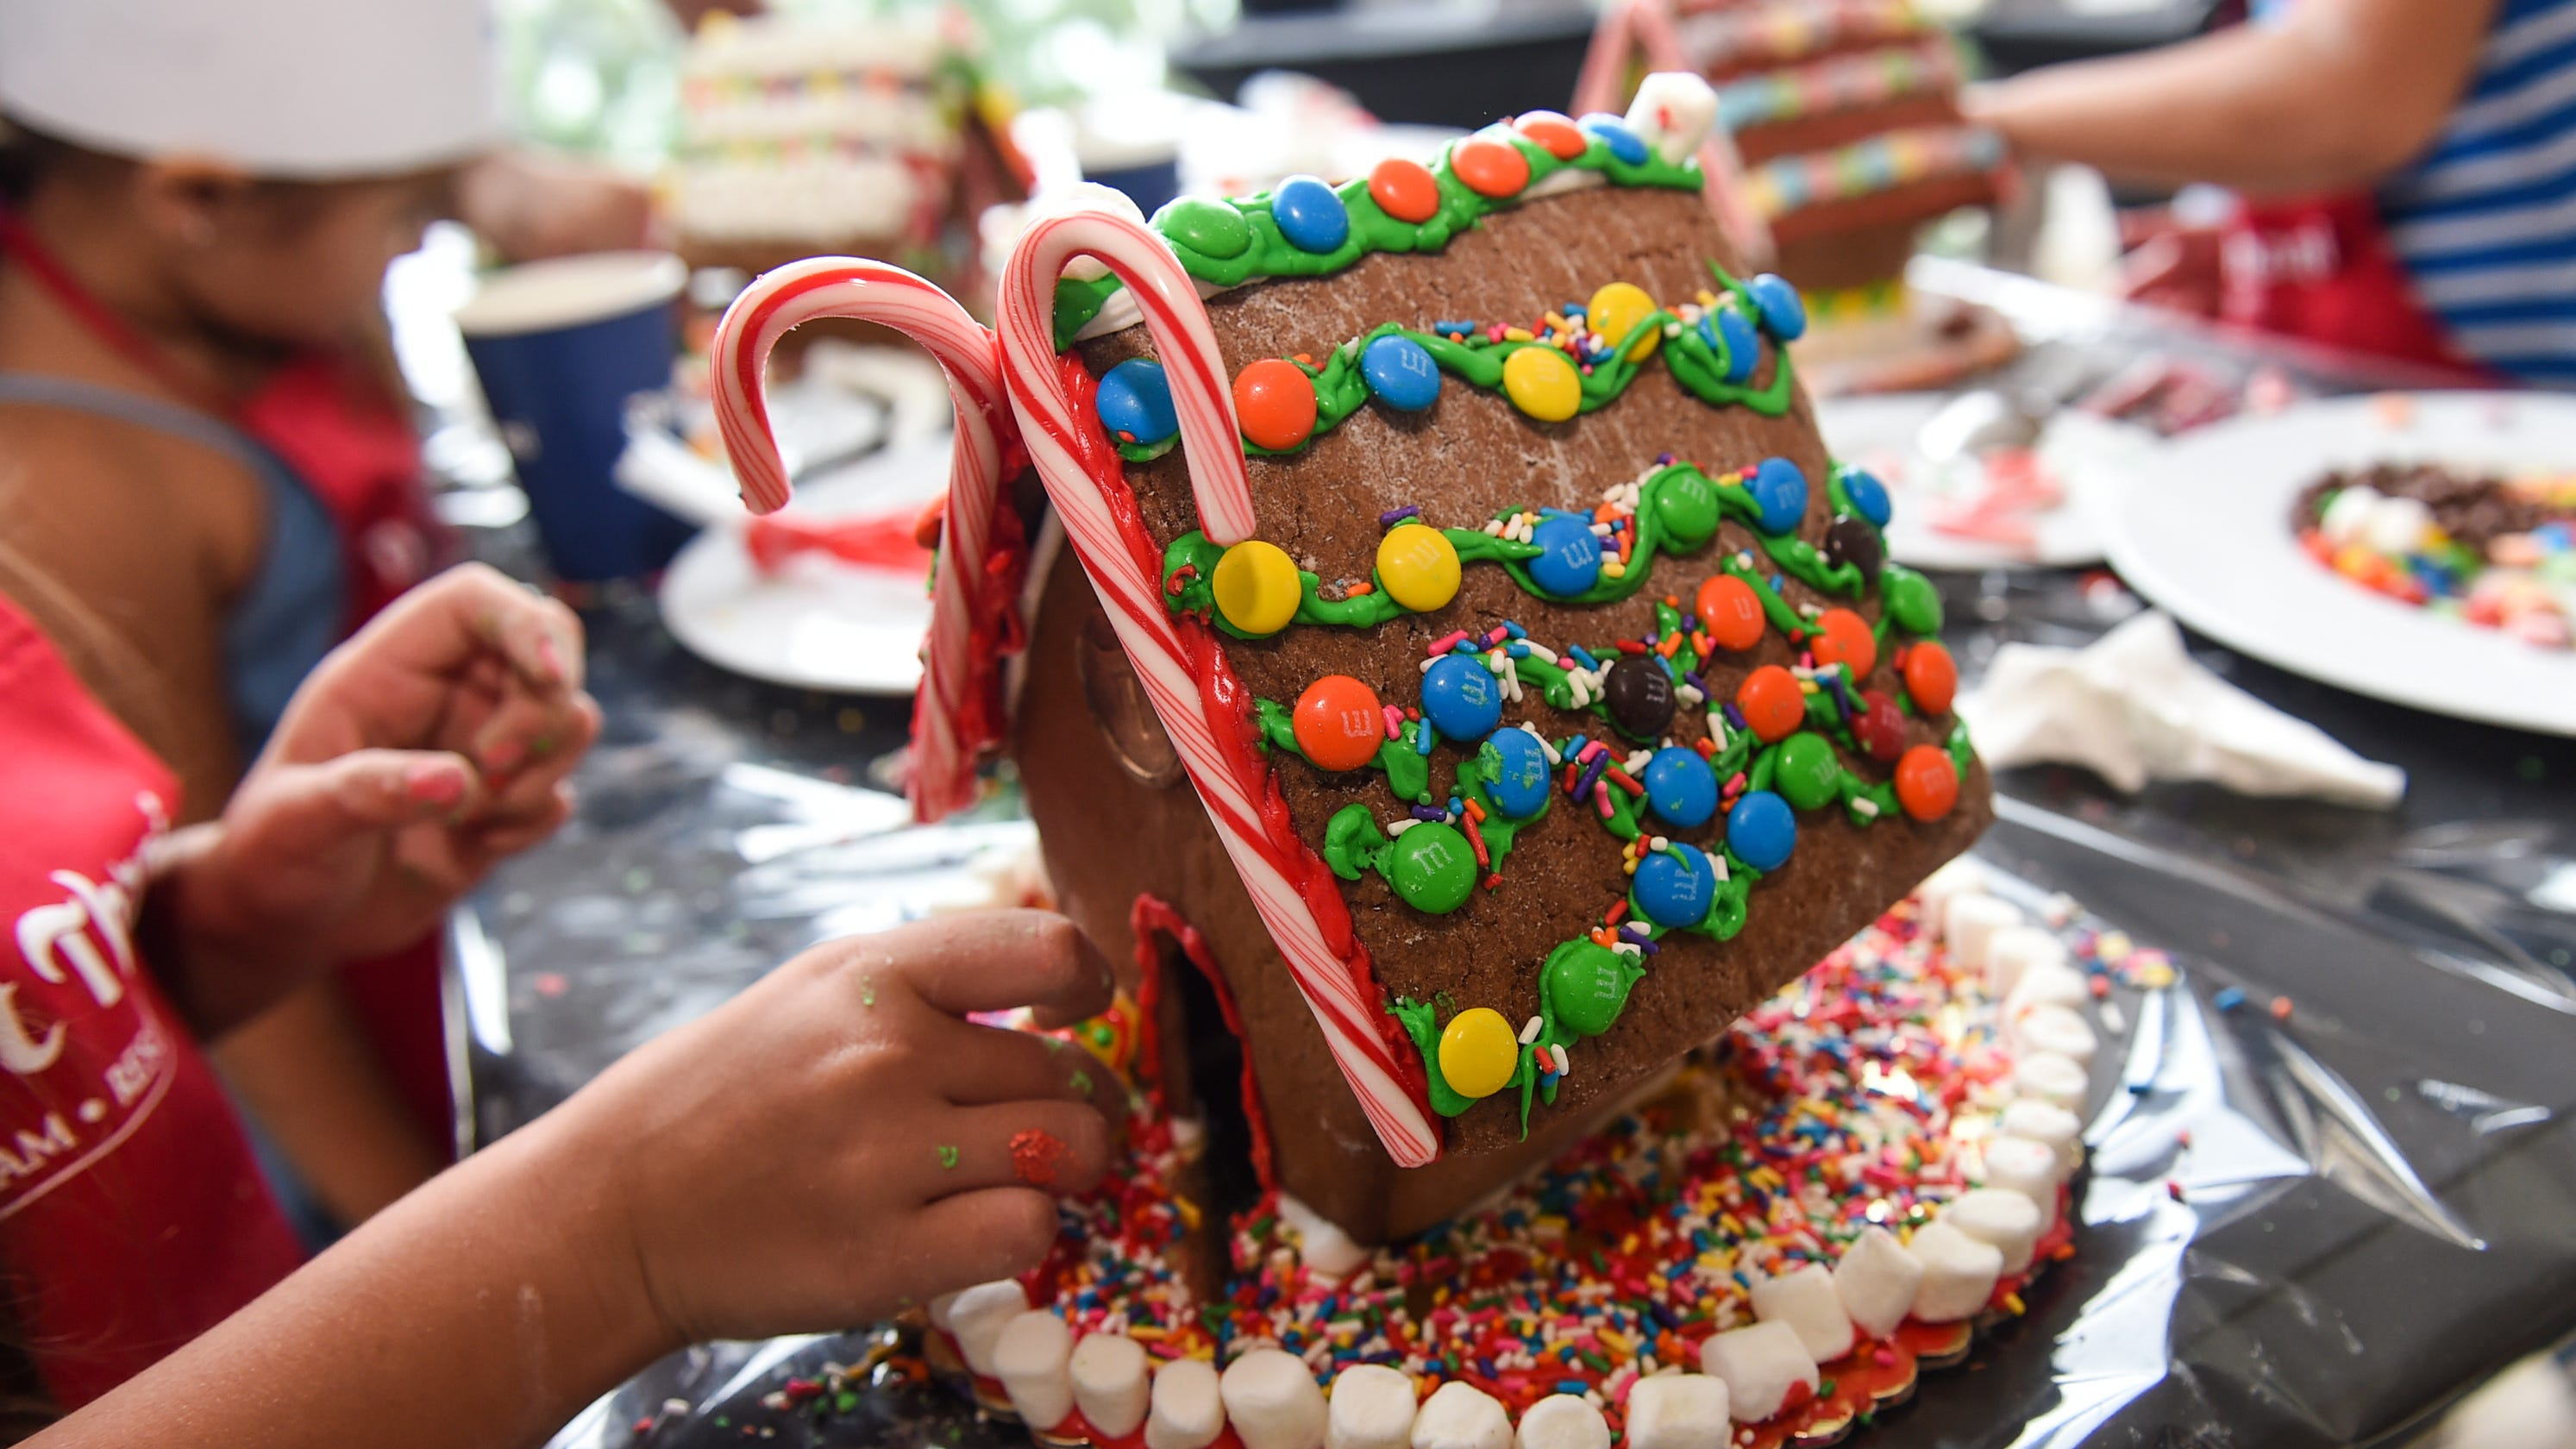 Gingerbread destruction raffle, toilet paper pyramid, Tiehm's buckwheat: News from around our 50 states